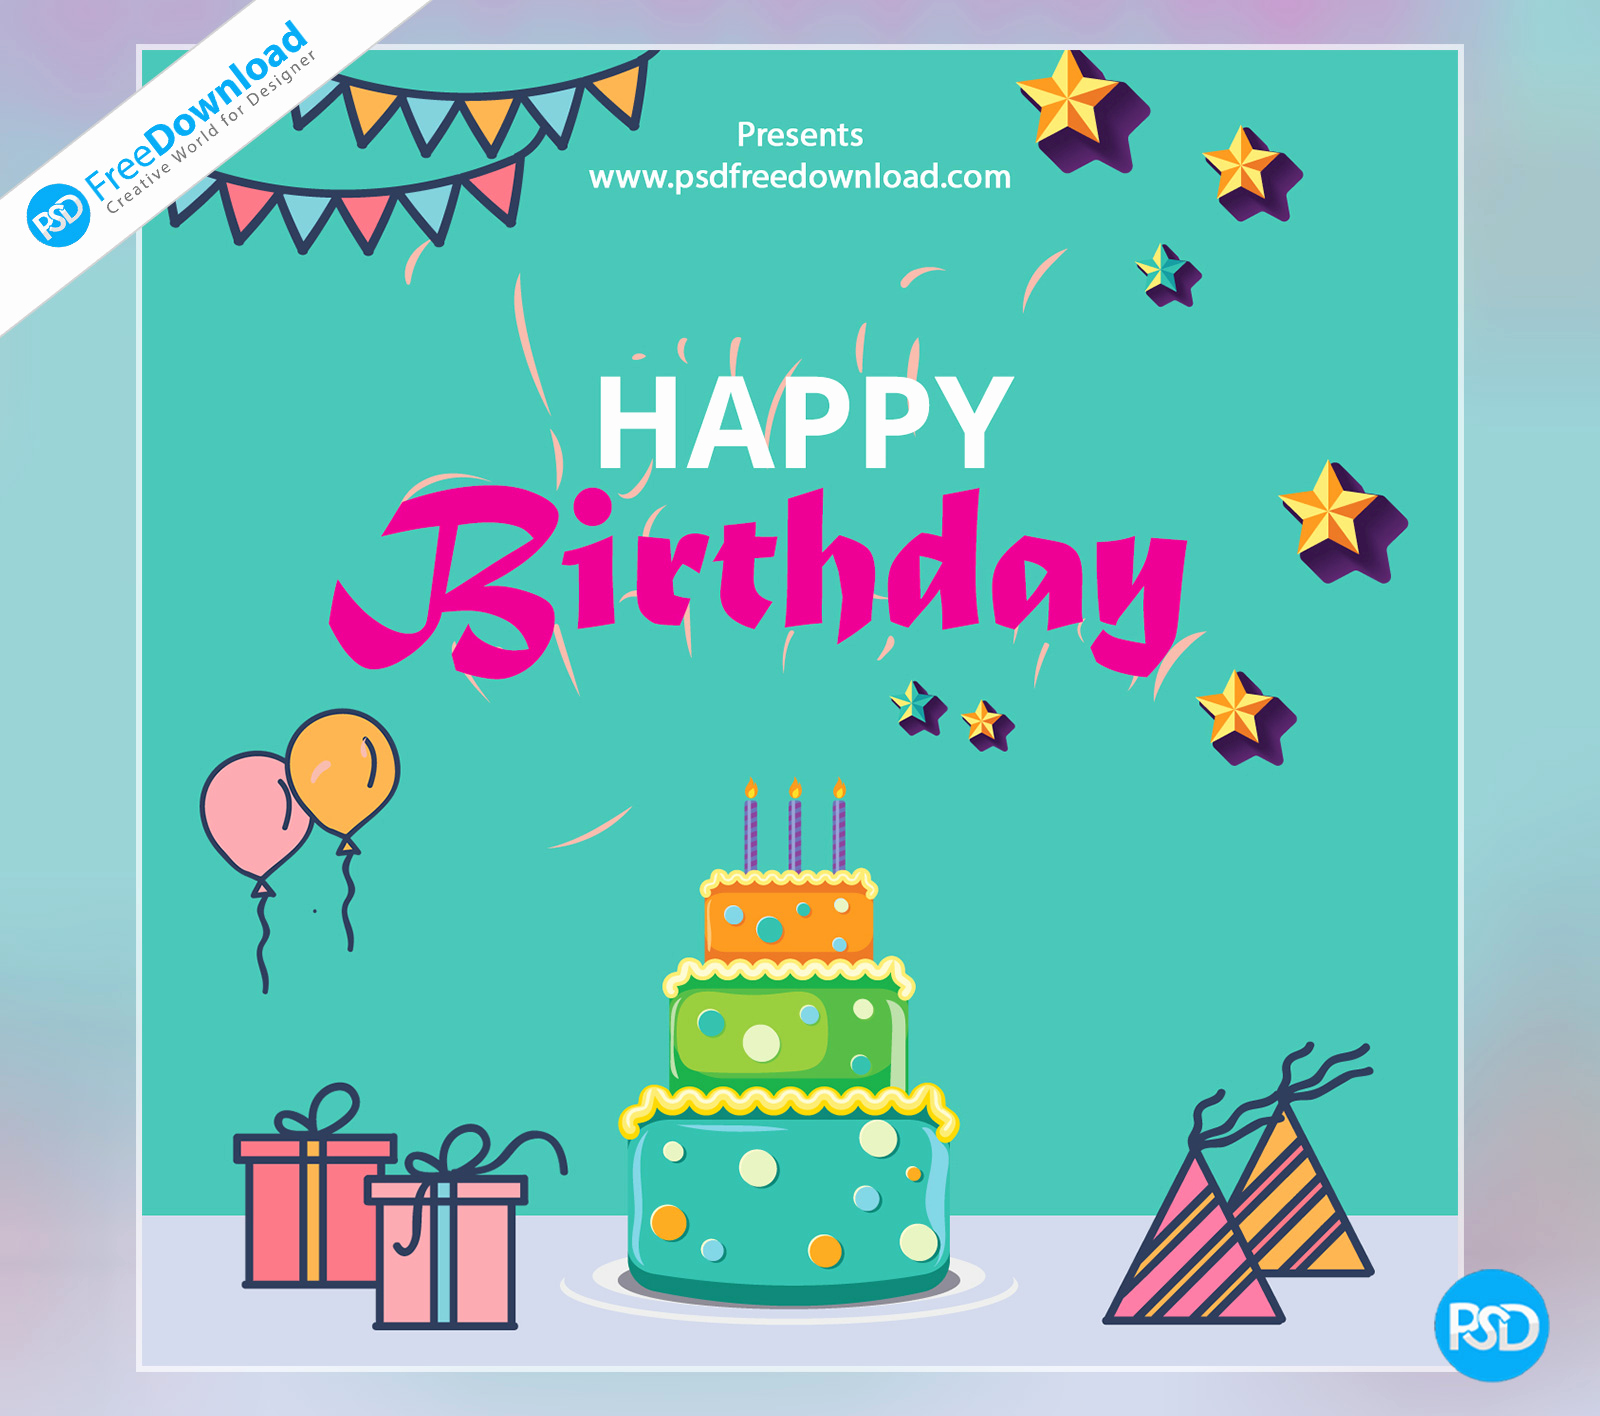 Happy Birthday Card Template Elegant Happy Birthday Template Greeting Card Psd Free Download